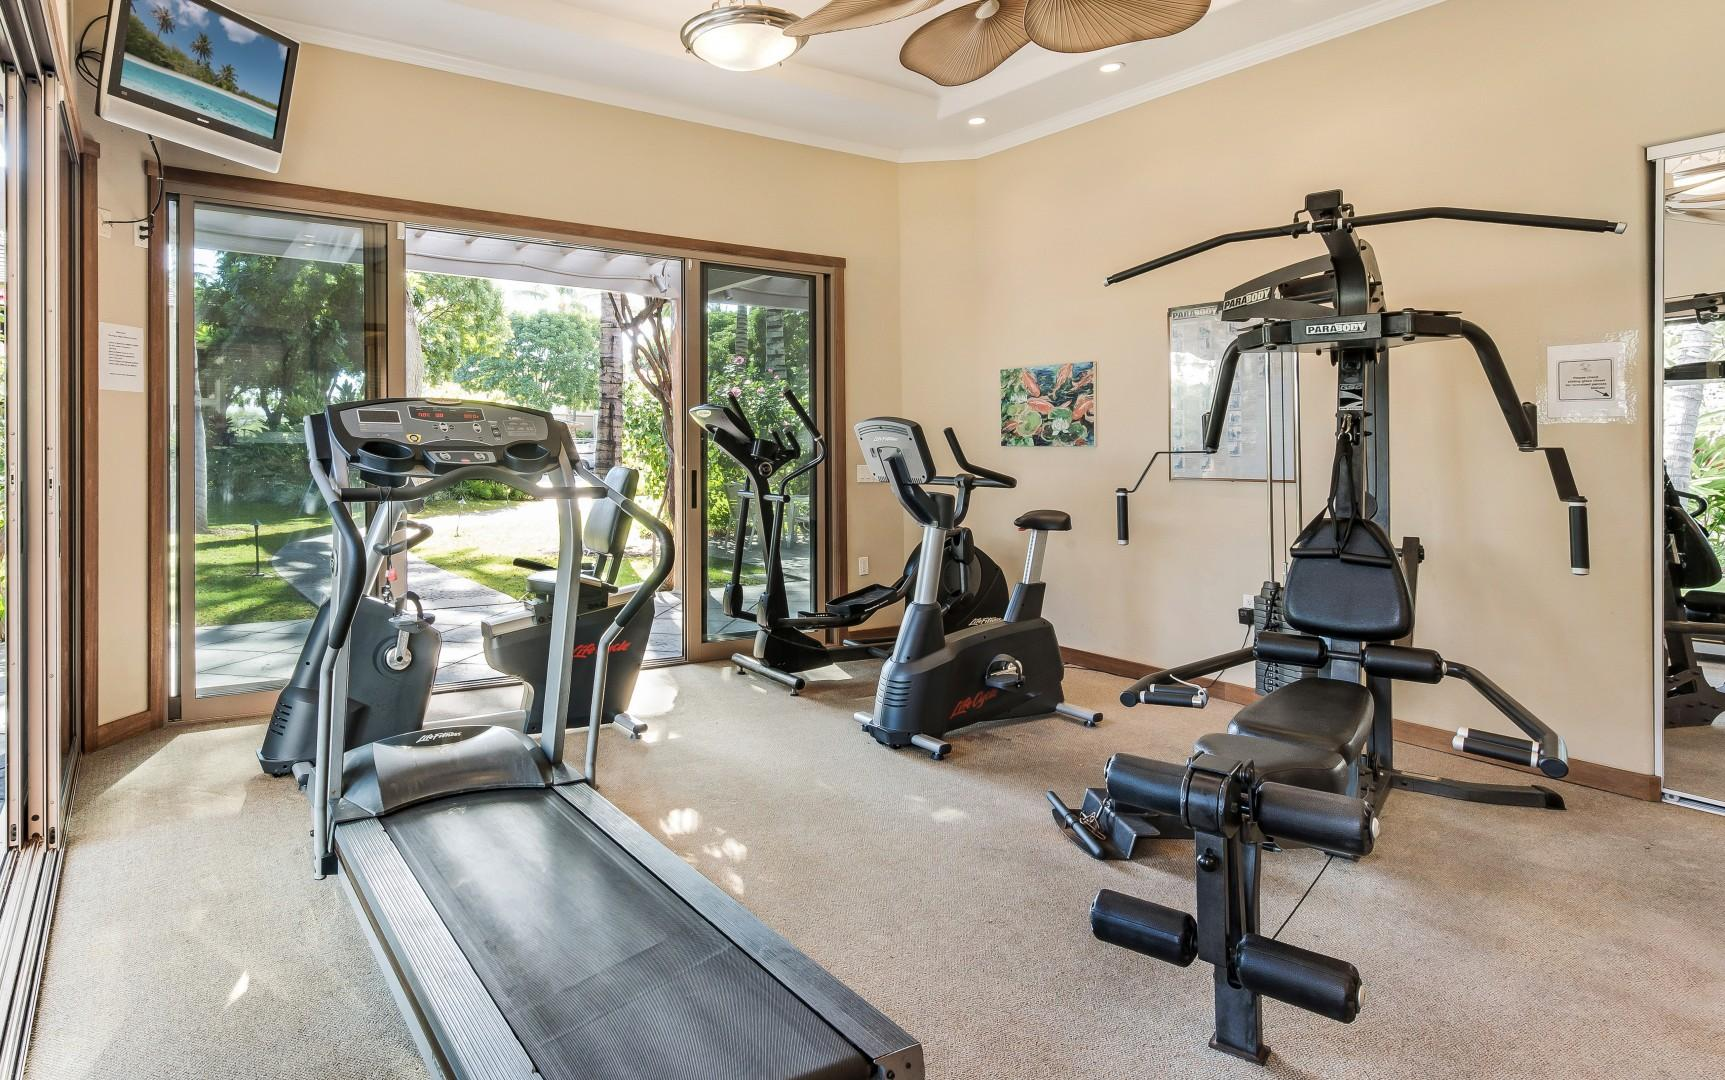 Air-Conditioned Fitness Room Next to Swimming Pool w/ Treadmill, Elliptical Bike, Stairmaster, and Weight Machine